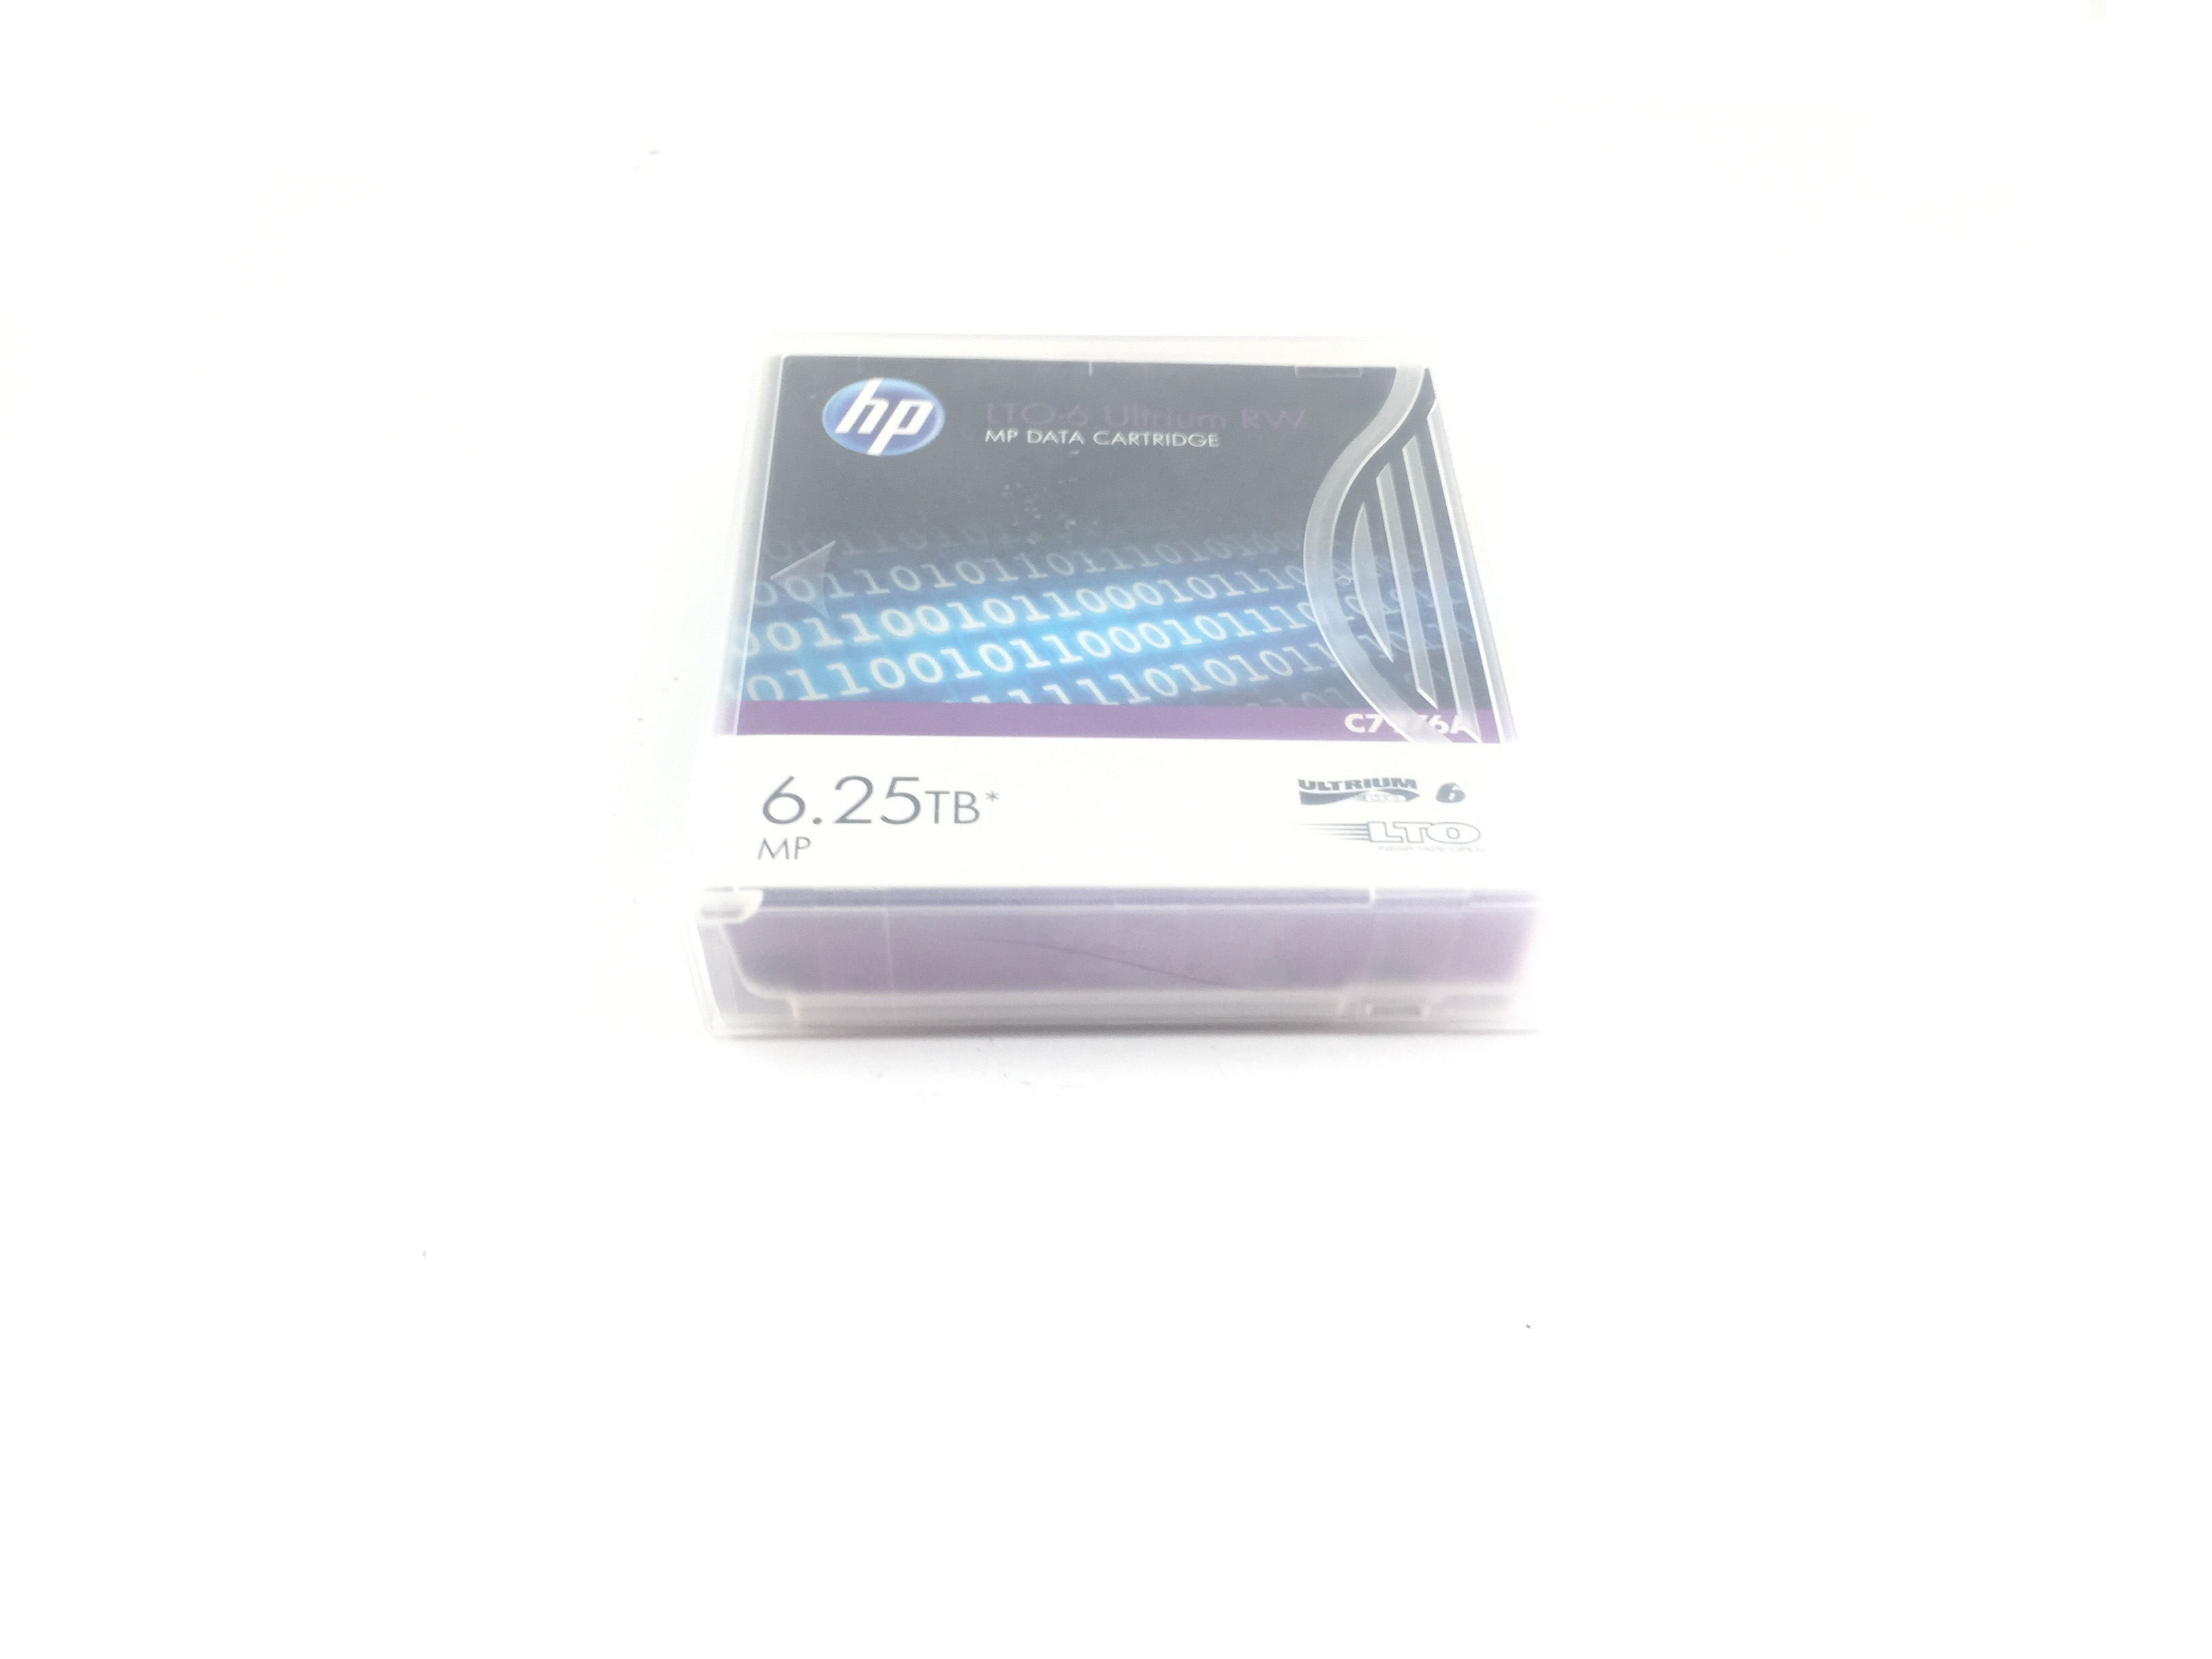 HP Lto 6 Ultrium 6.25TB Mp Data Cartridge (C7976A)